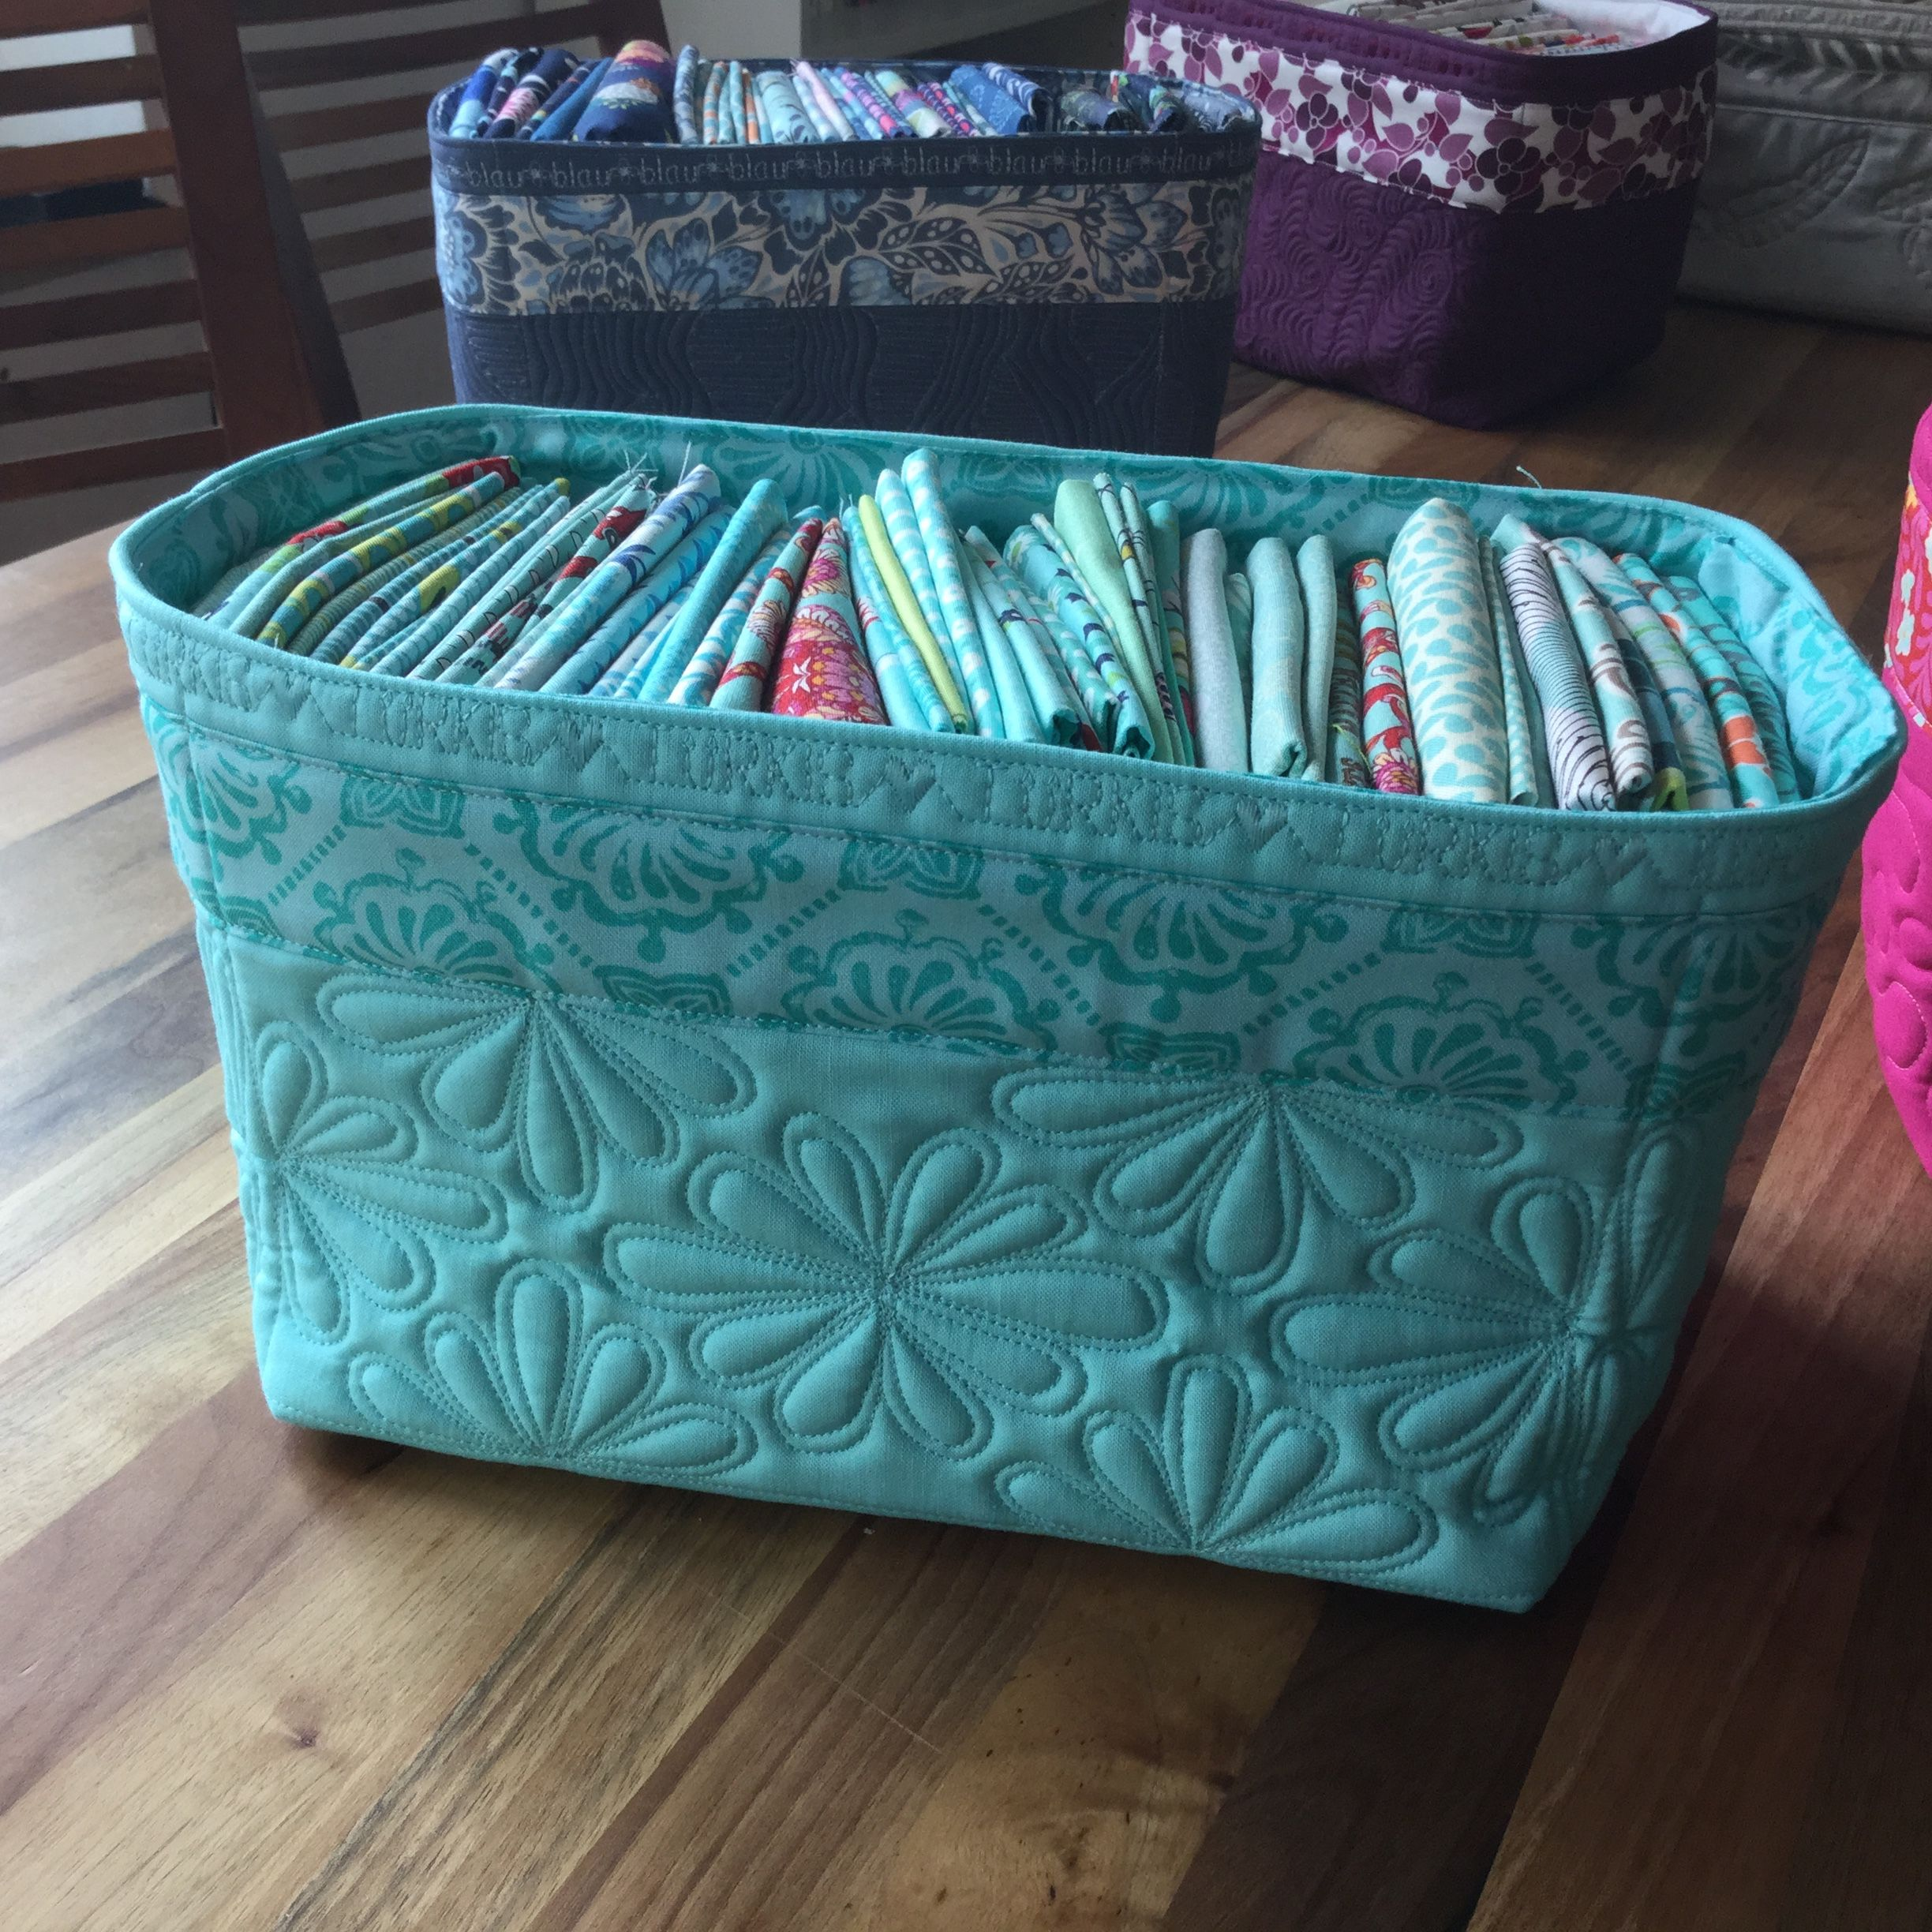 Mostly I tried to pick my quilting patterns in a way, that would reflect  the pattern on the accent fabric like on this turquoise basket